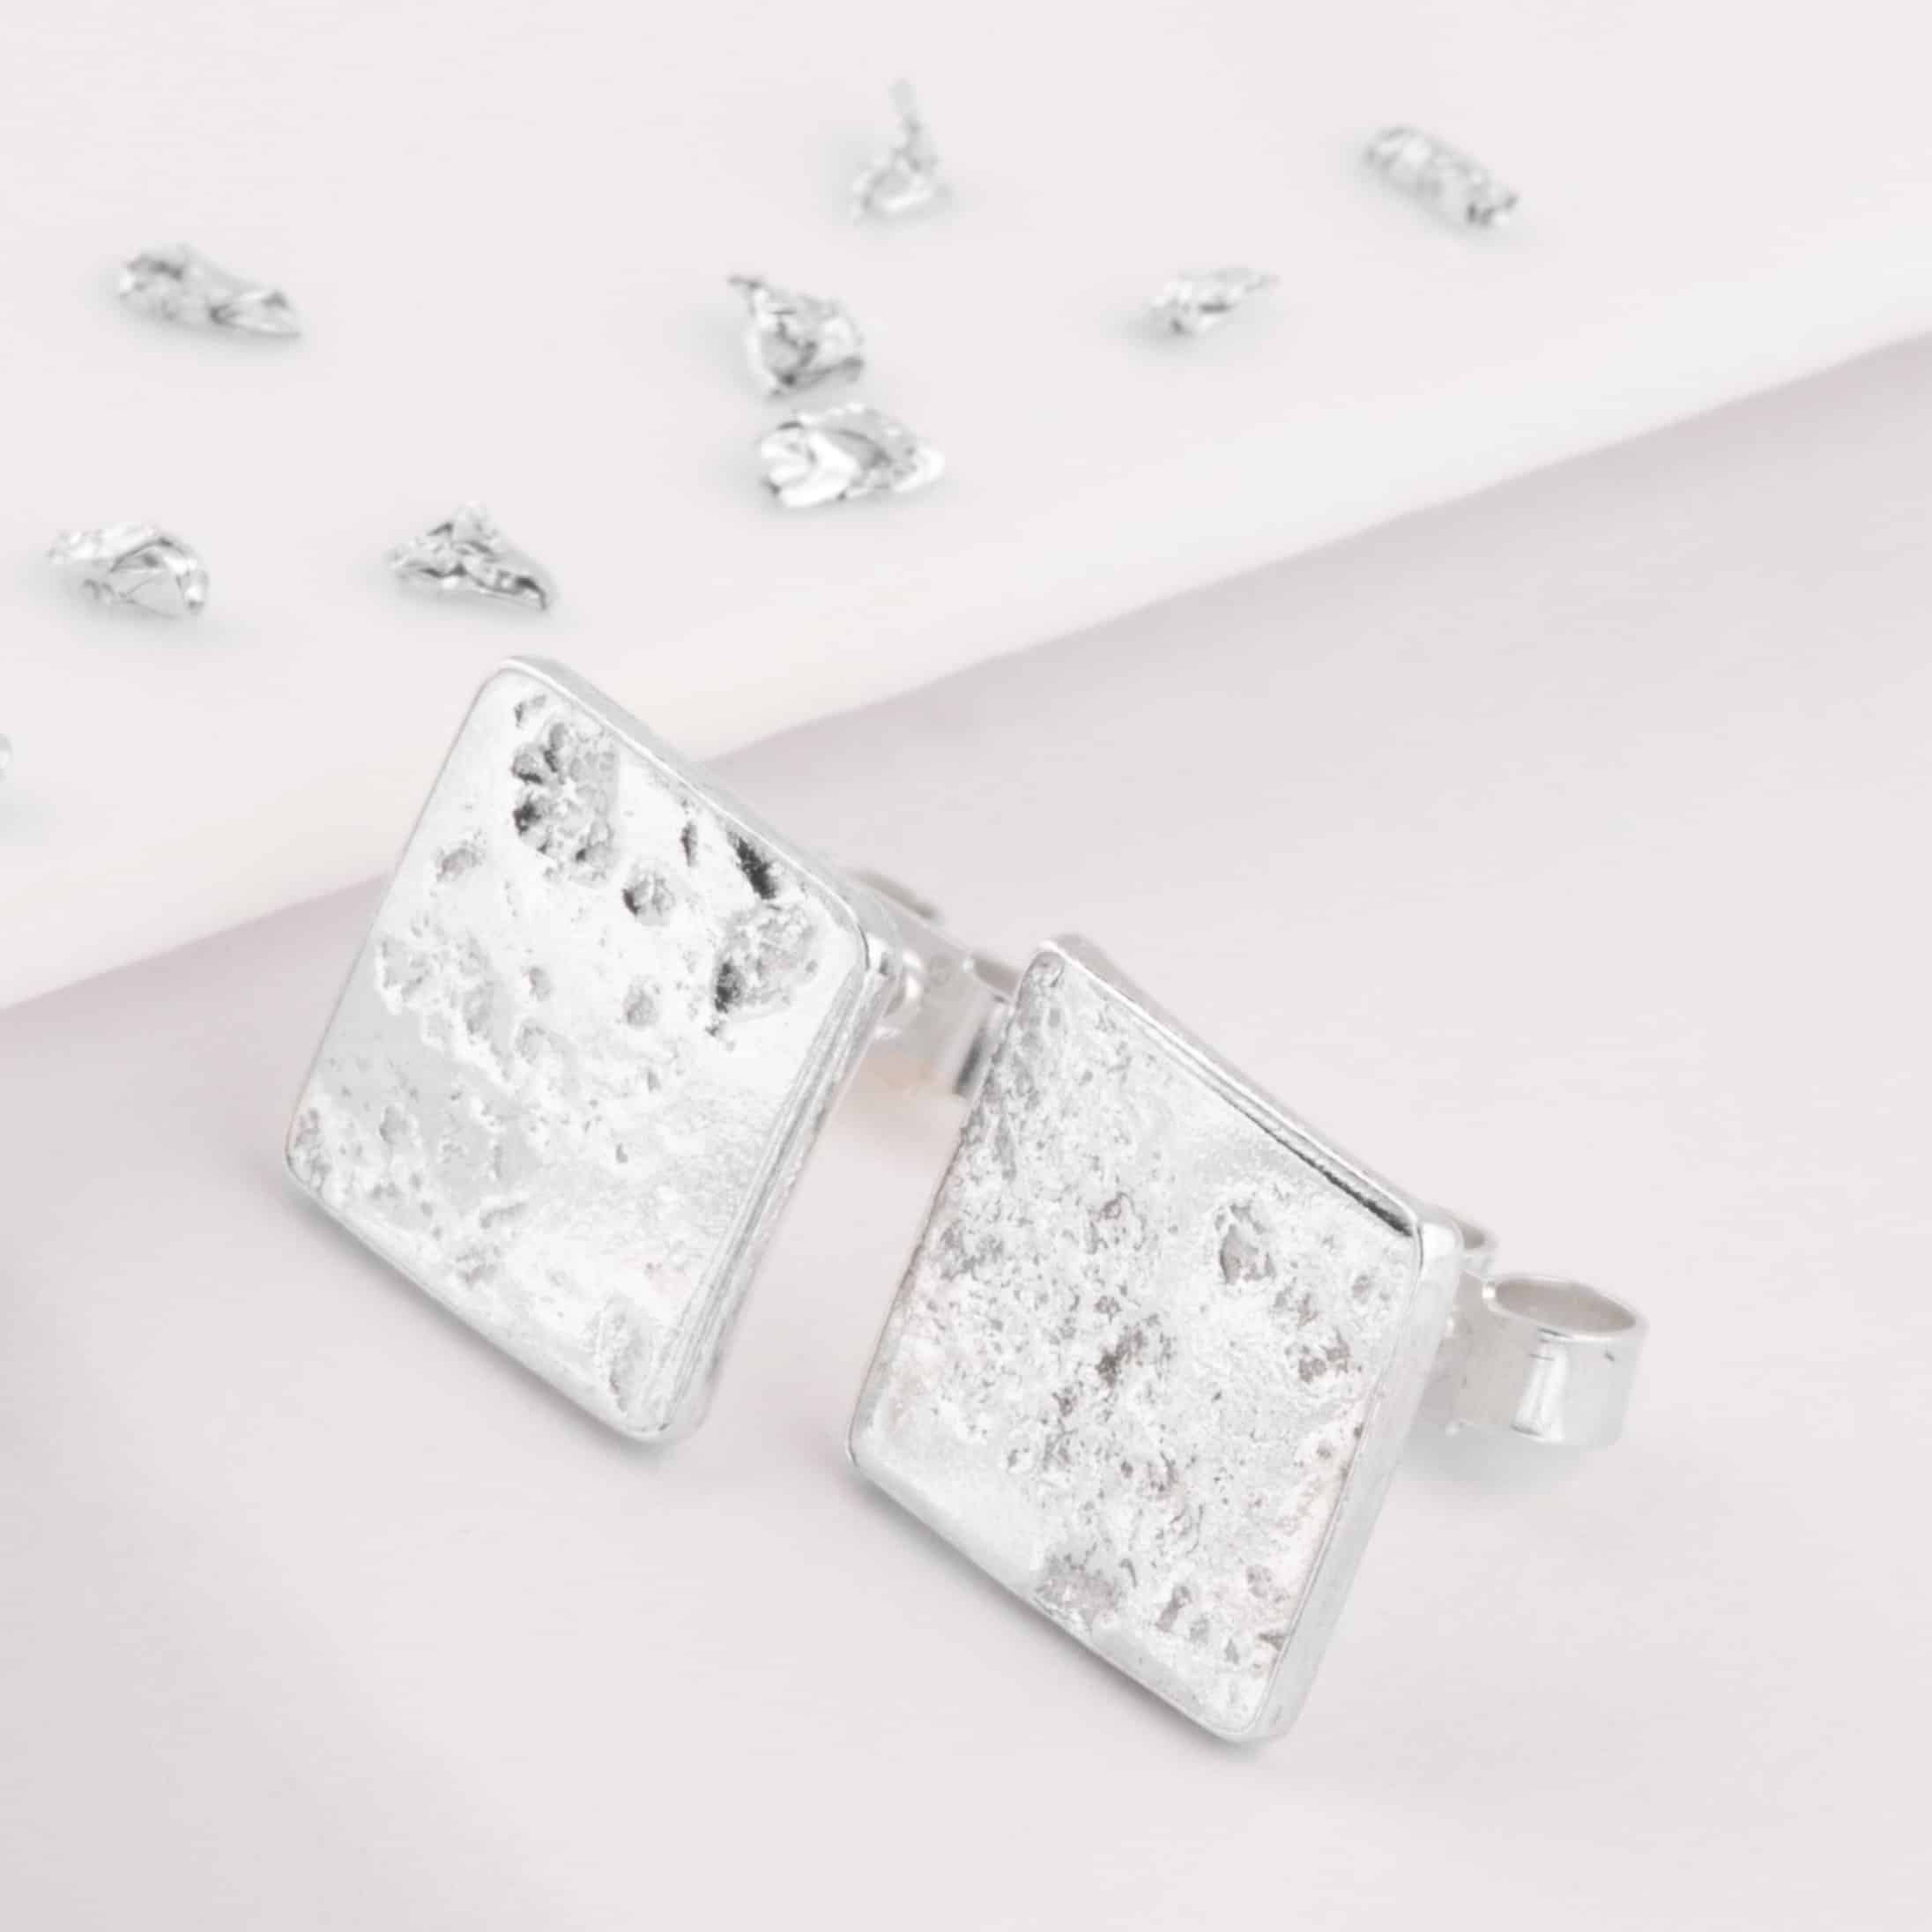 Imprinted Ashes or Hair Square Stud Earrings